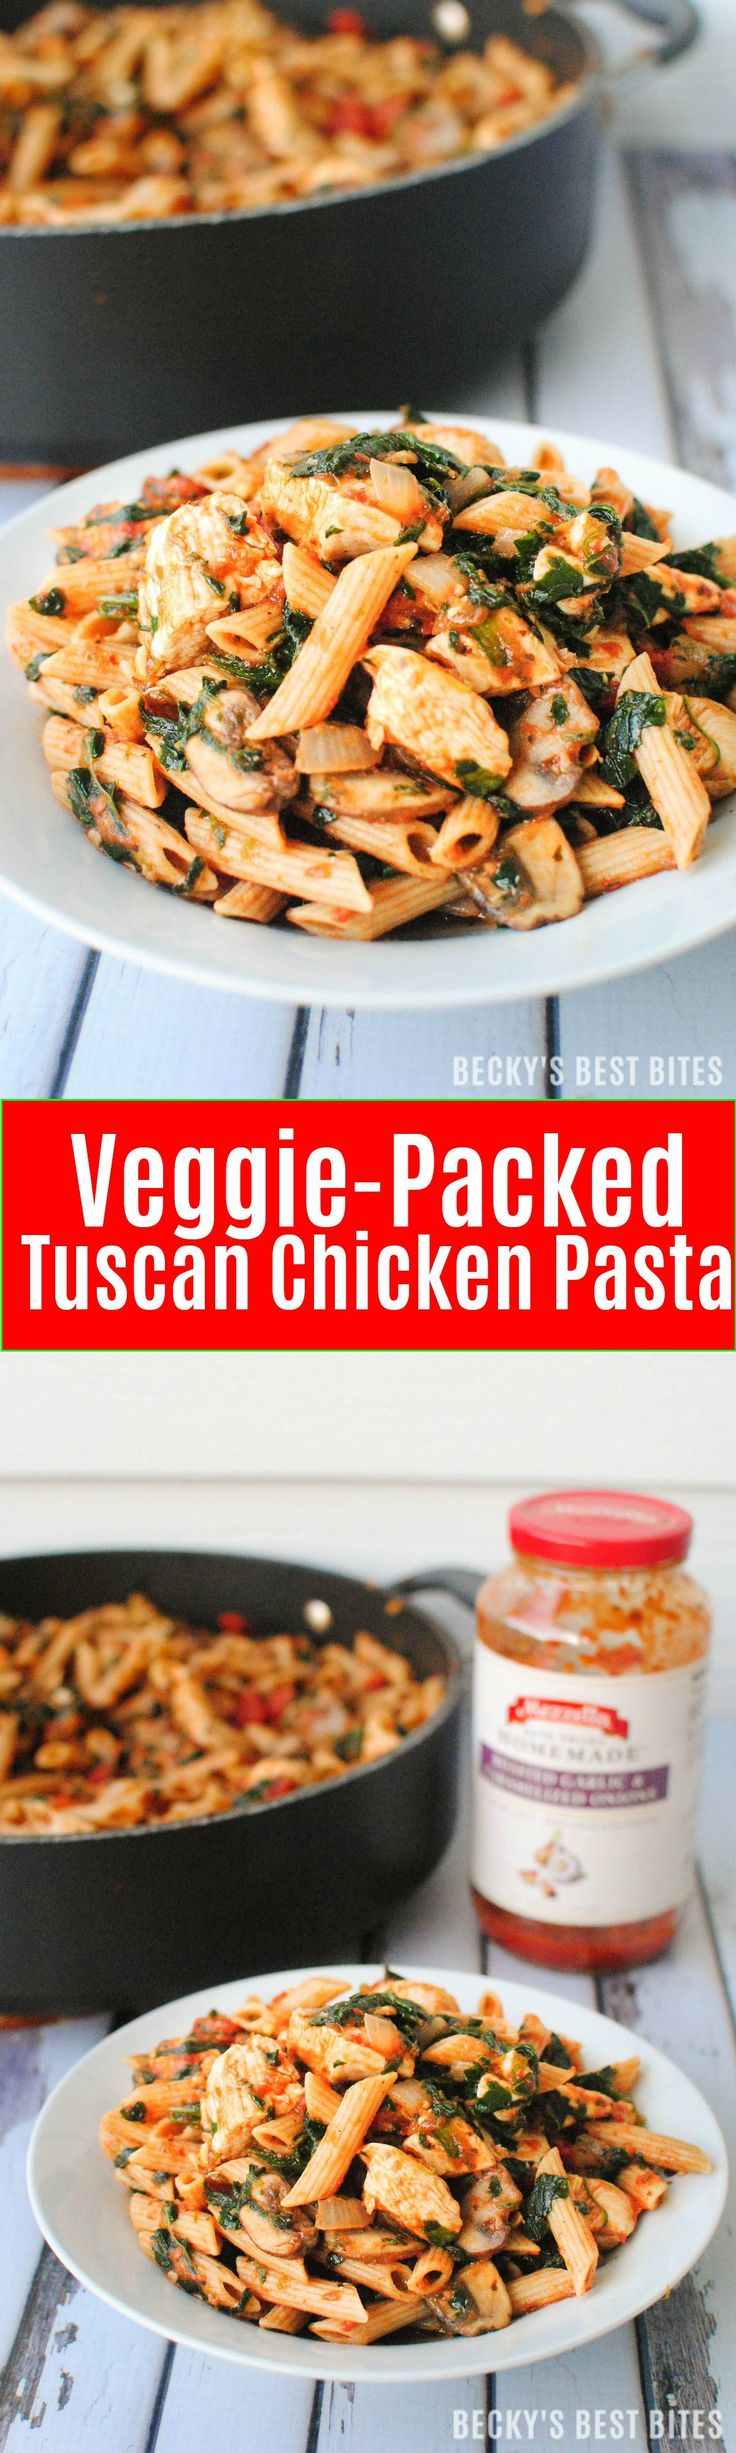 Veggie-Packed Tuscan Chicken Pasta is a healthy weeknight dinner recipe. Get a tasty meal loaded with mushrooms, tomatoes and spinach on the table in 30 minutes. | beckysbestbites.com #FallforFlavor #Ad